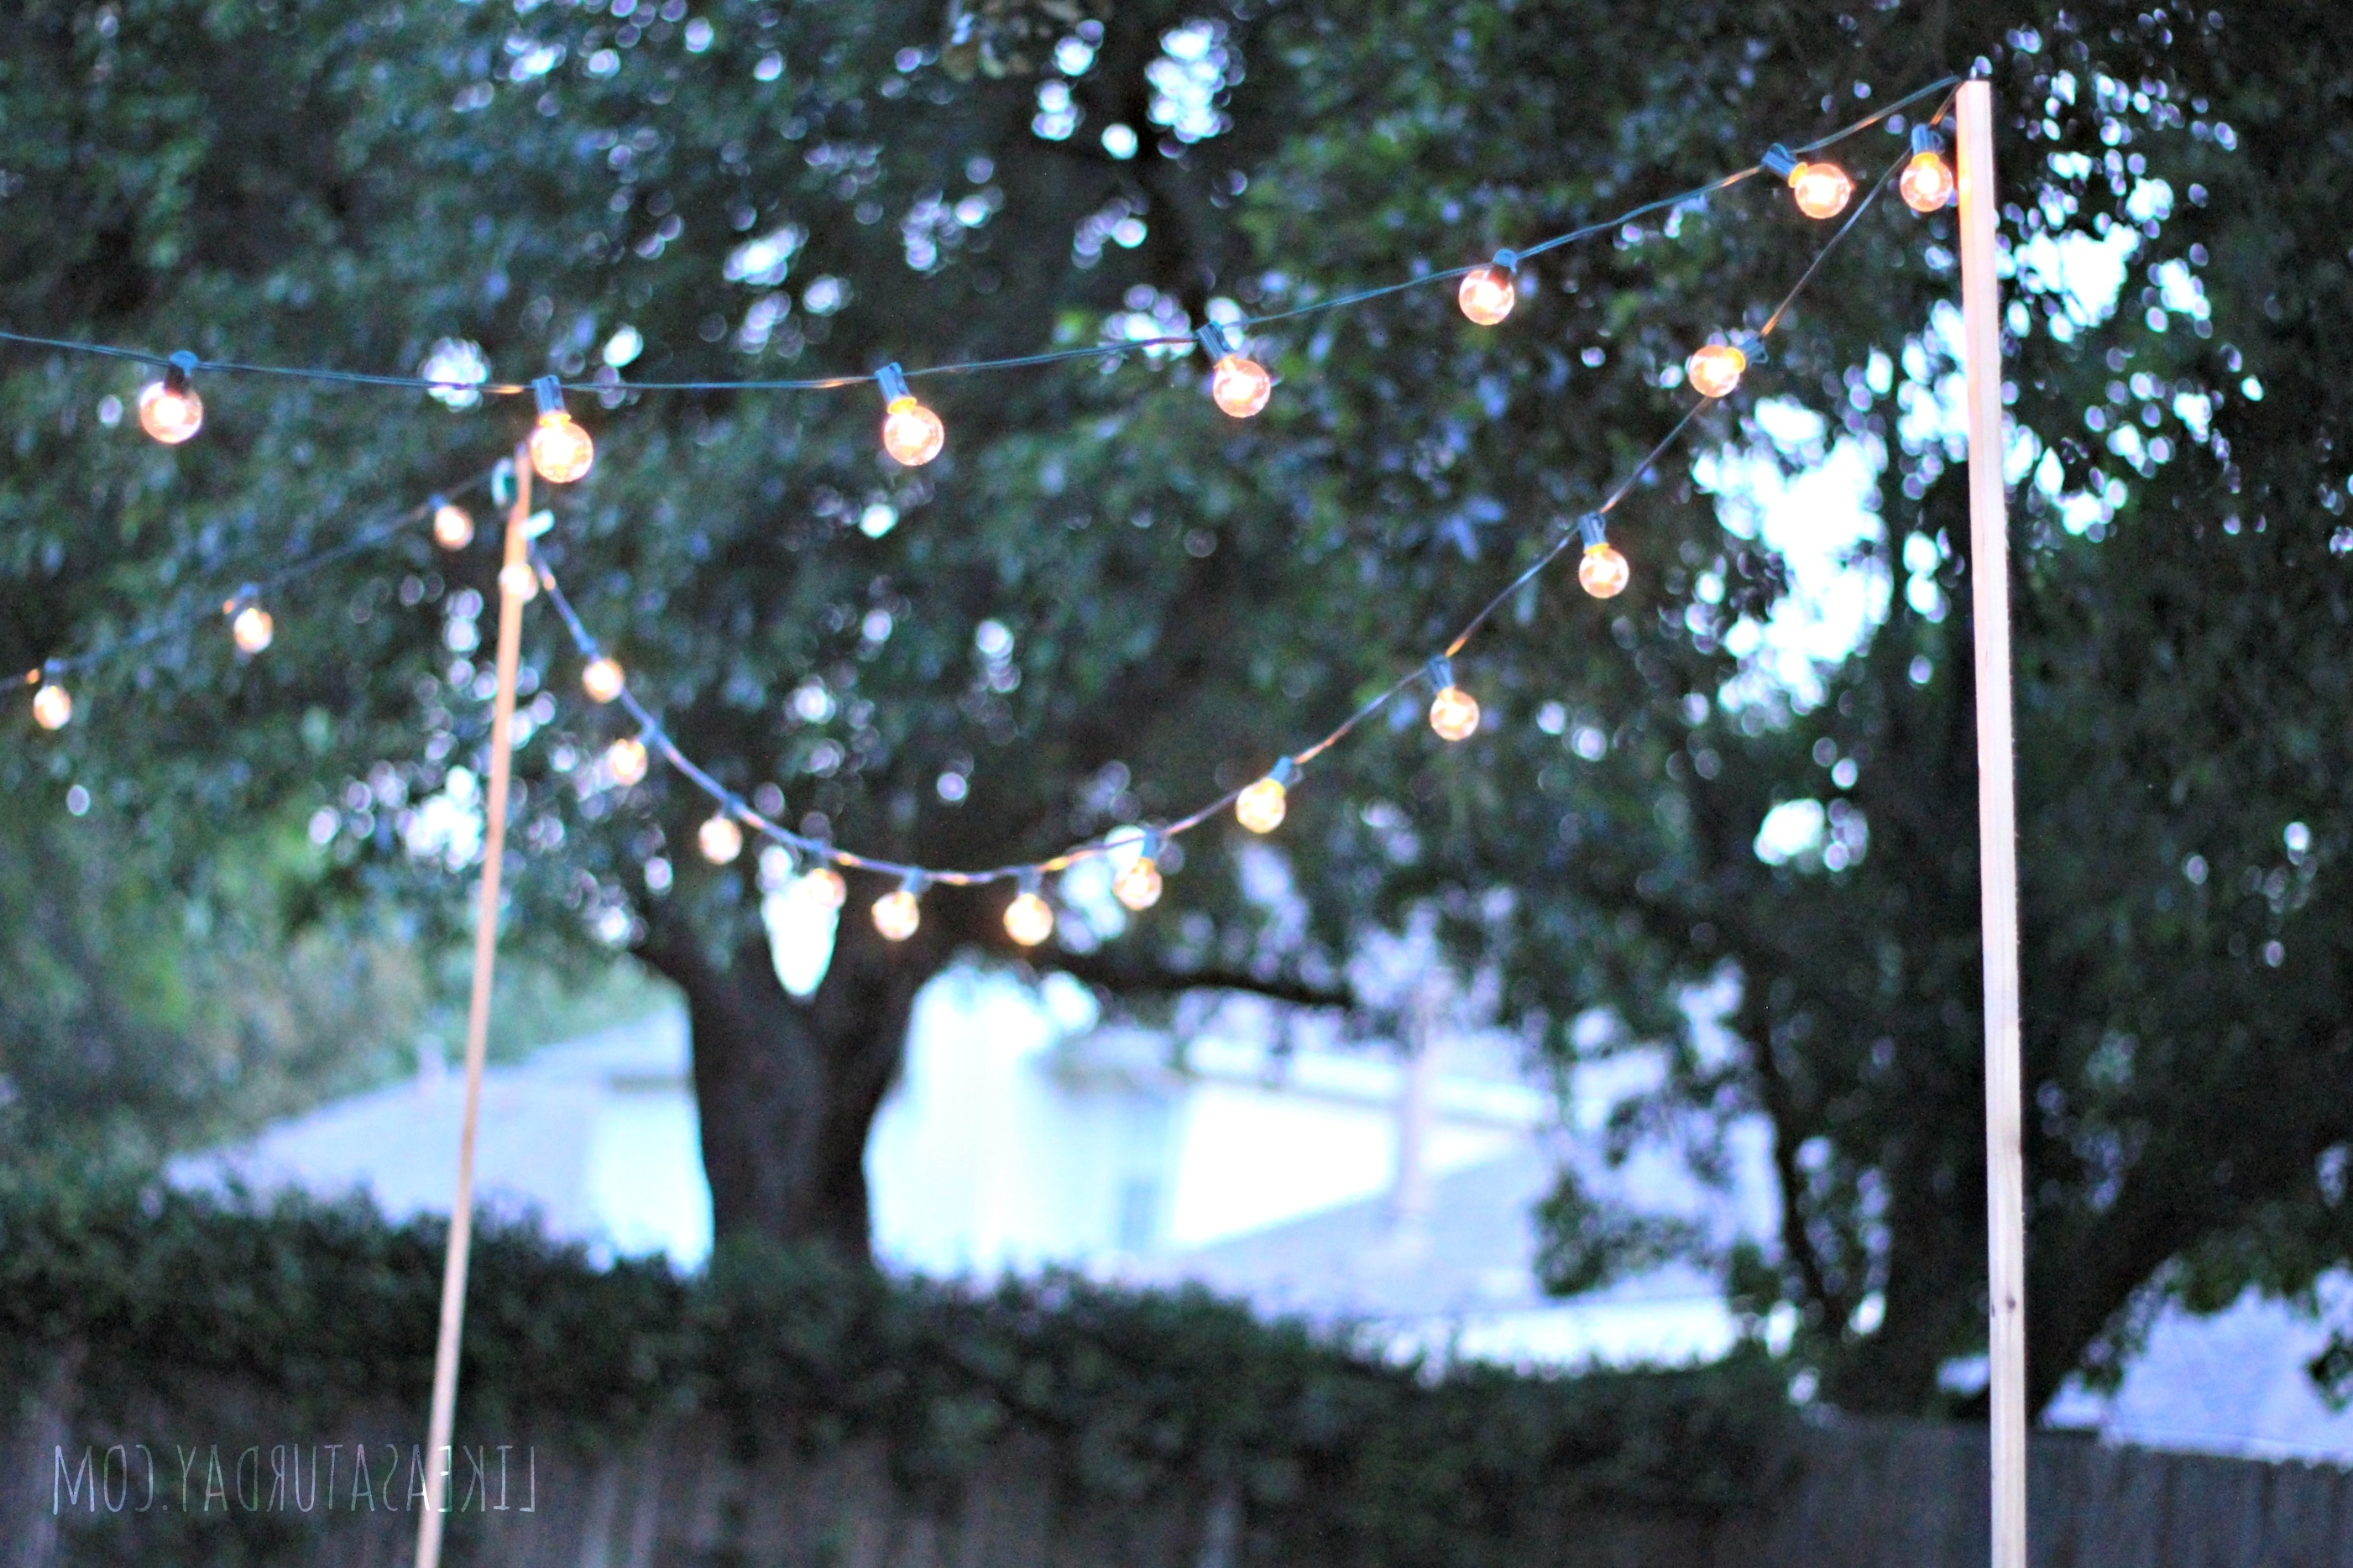 Hanging Outdoor Christmas Lights Without Nails With Regard To Well Known Diy : Outdoor String Lights Hanging Brick Patio Without Nails Party (View 20 of 20)